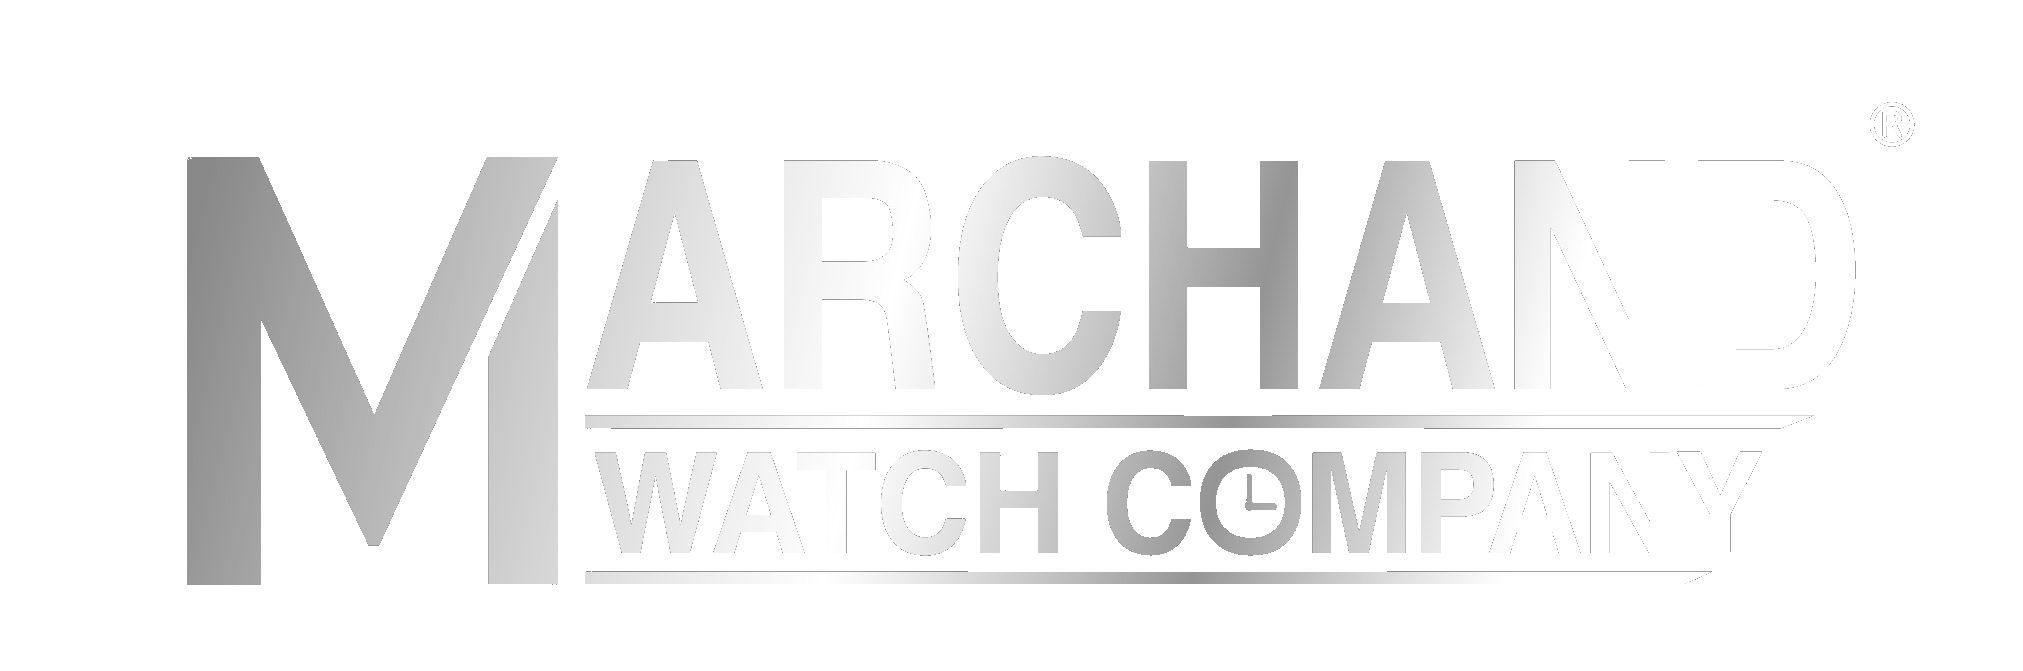 Marchand Logo